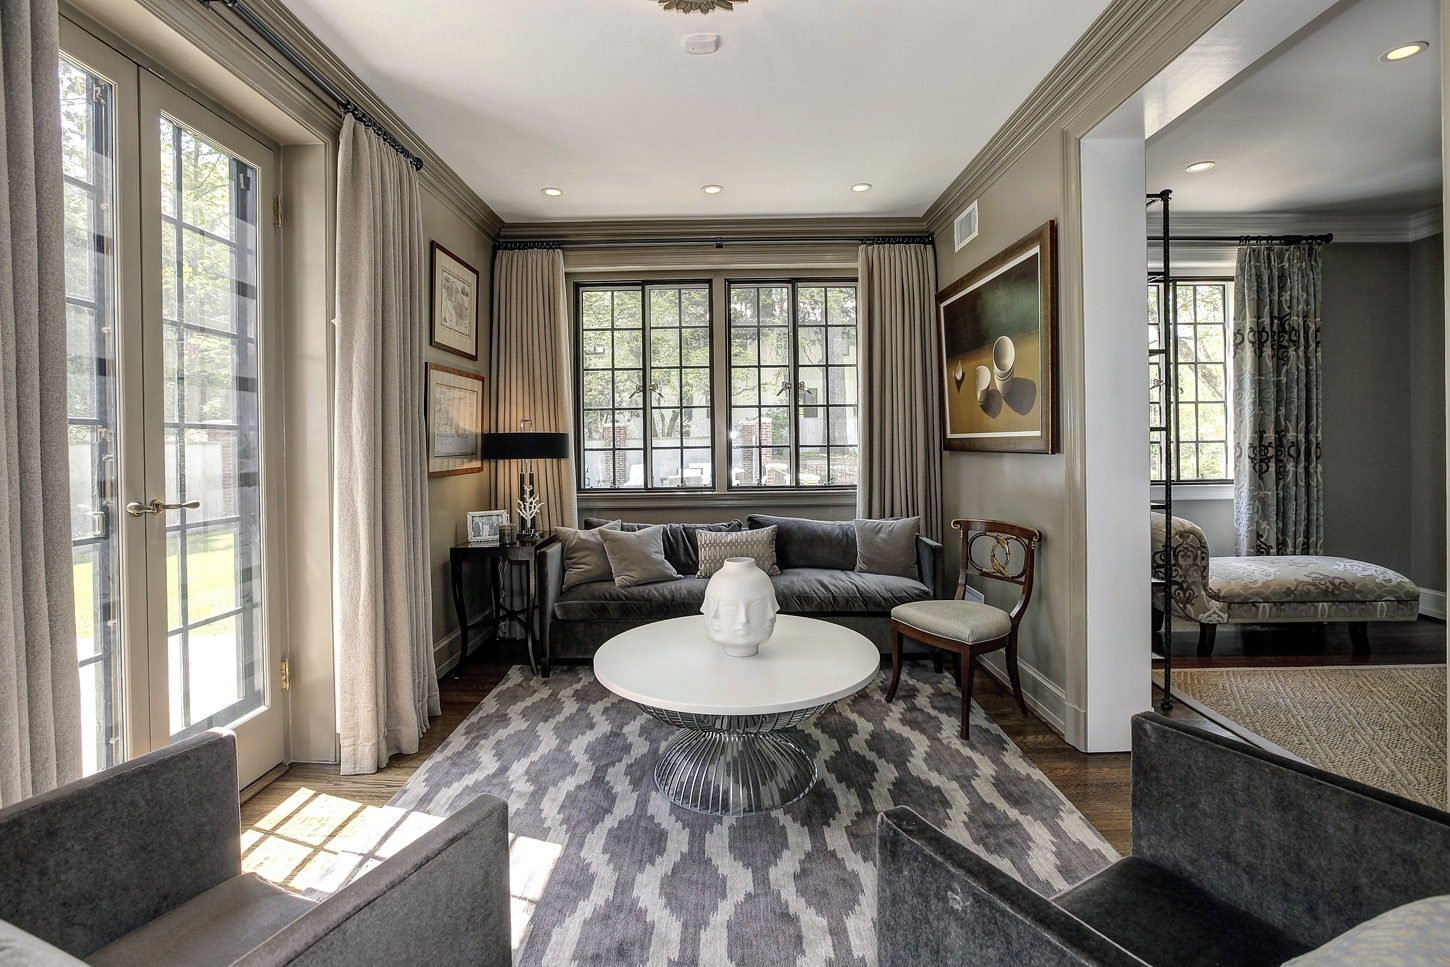 The sitting room of the Obamas' new house, in the Kalorama area of Northwest D.C. (Courtesy McFadden Group)